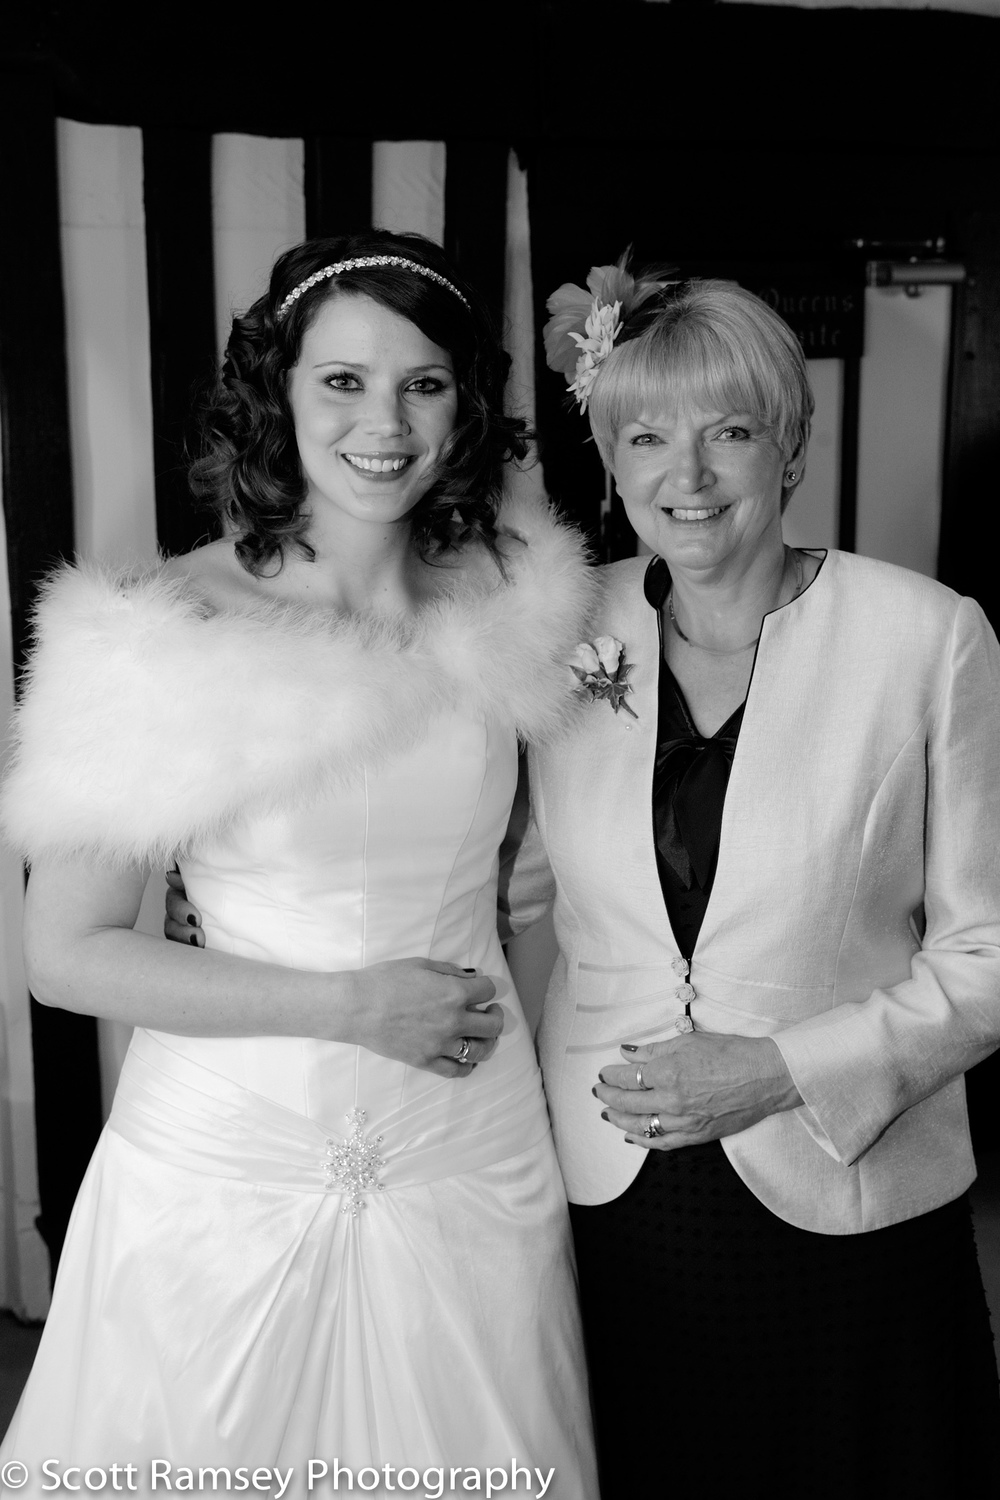 Winter-Wedding-Spread-Eagle-Hotel-Midhurst-Bride-And-Mum-031210-